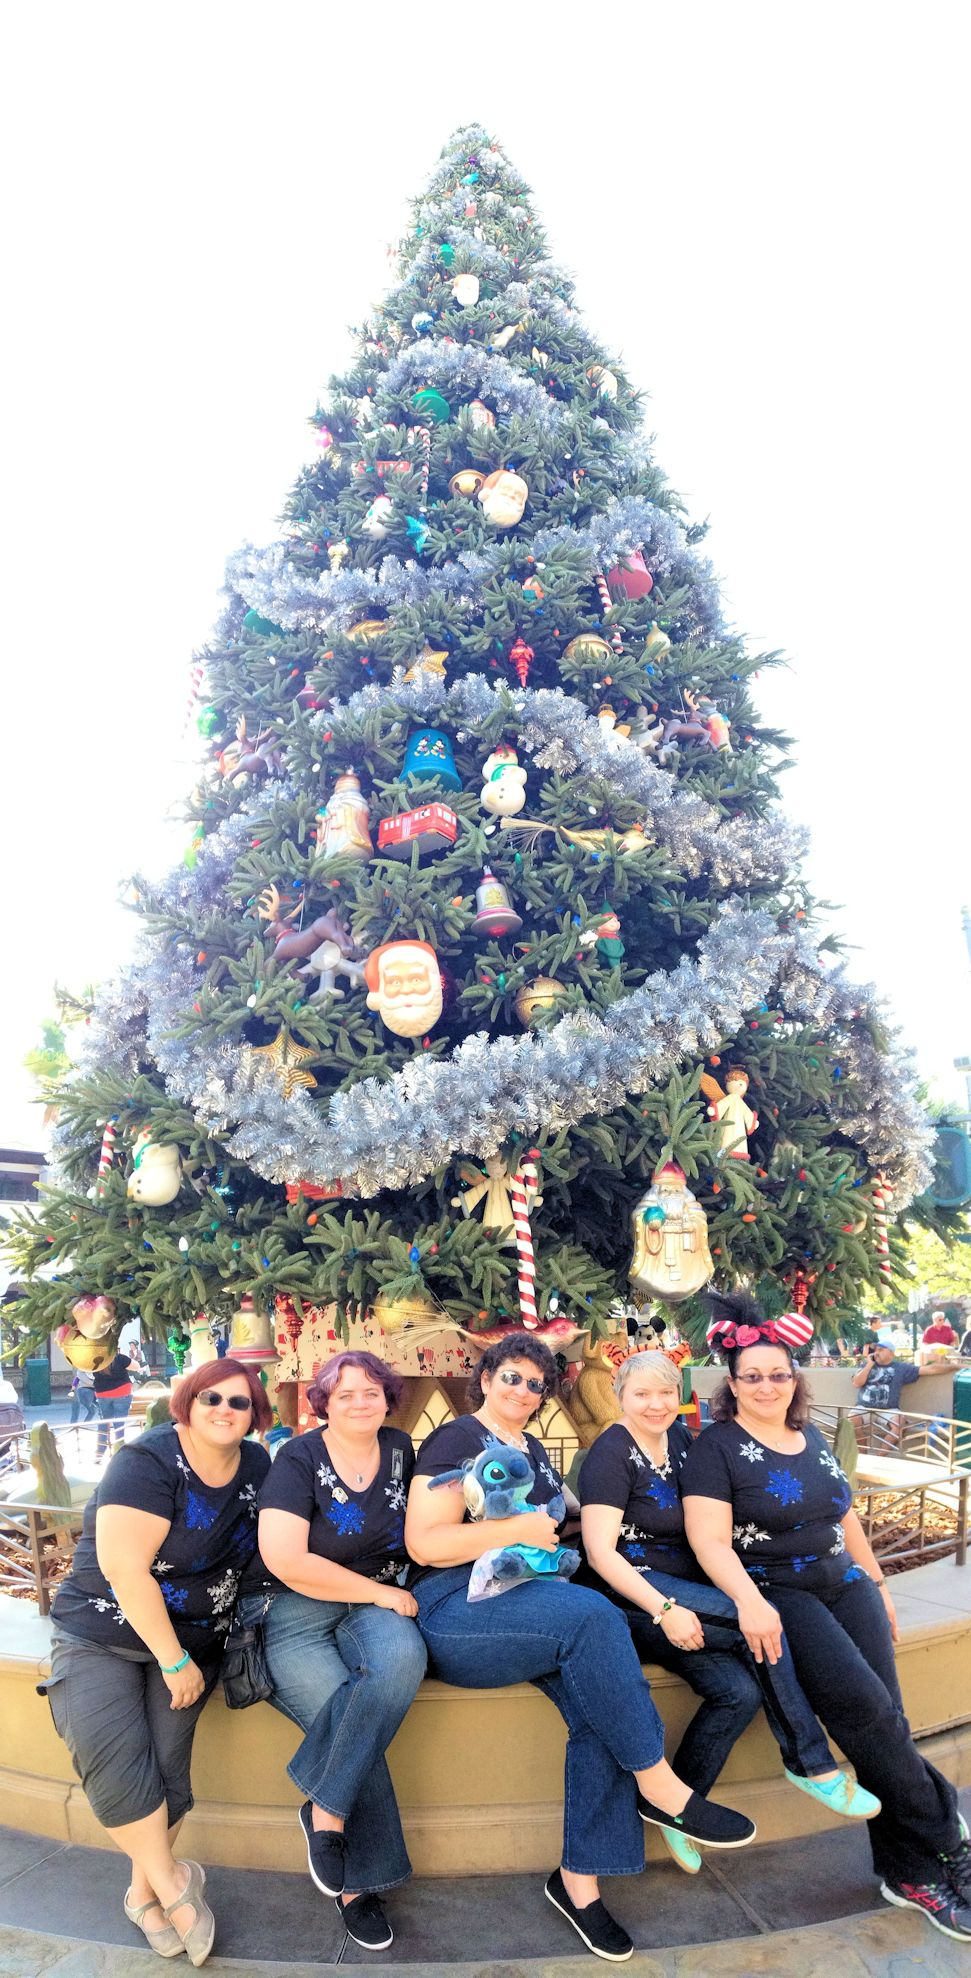 Disneyland 2014 Christmas Tree small